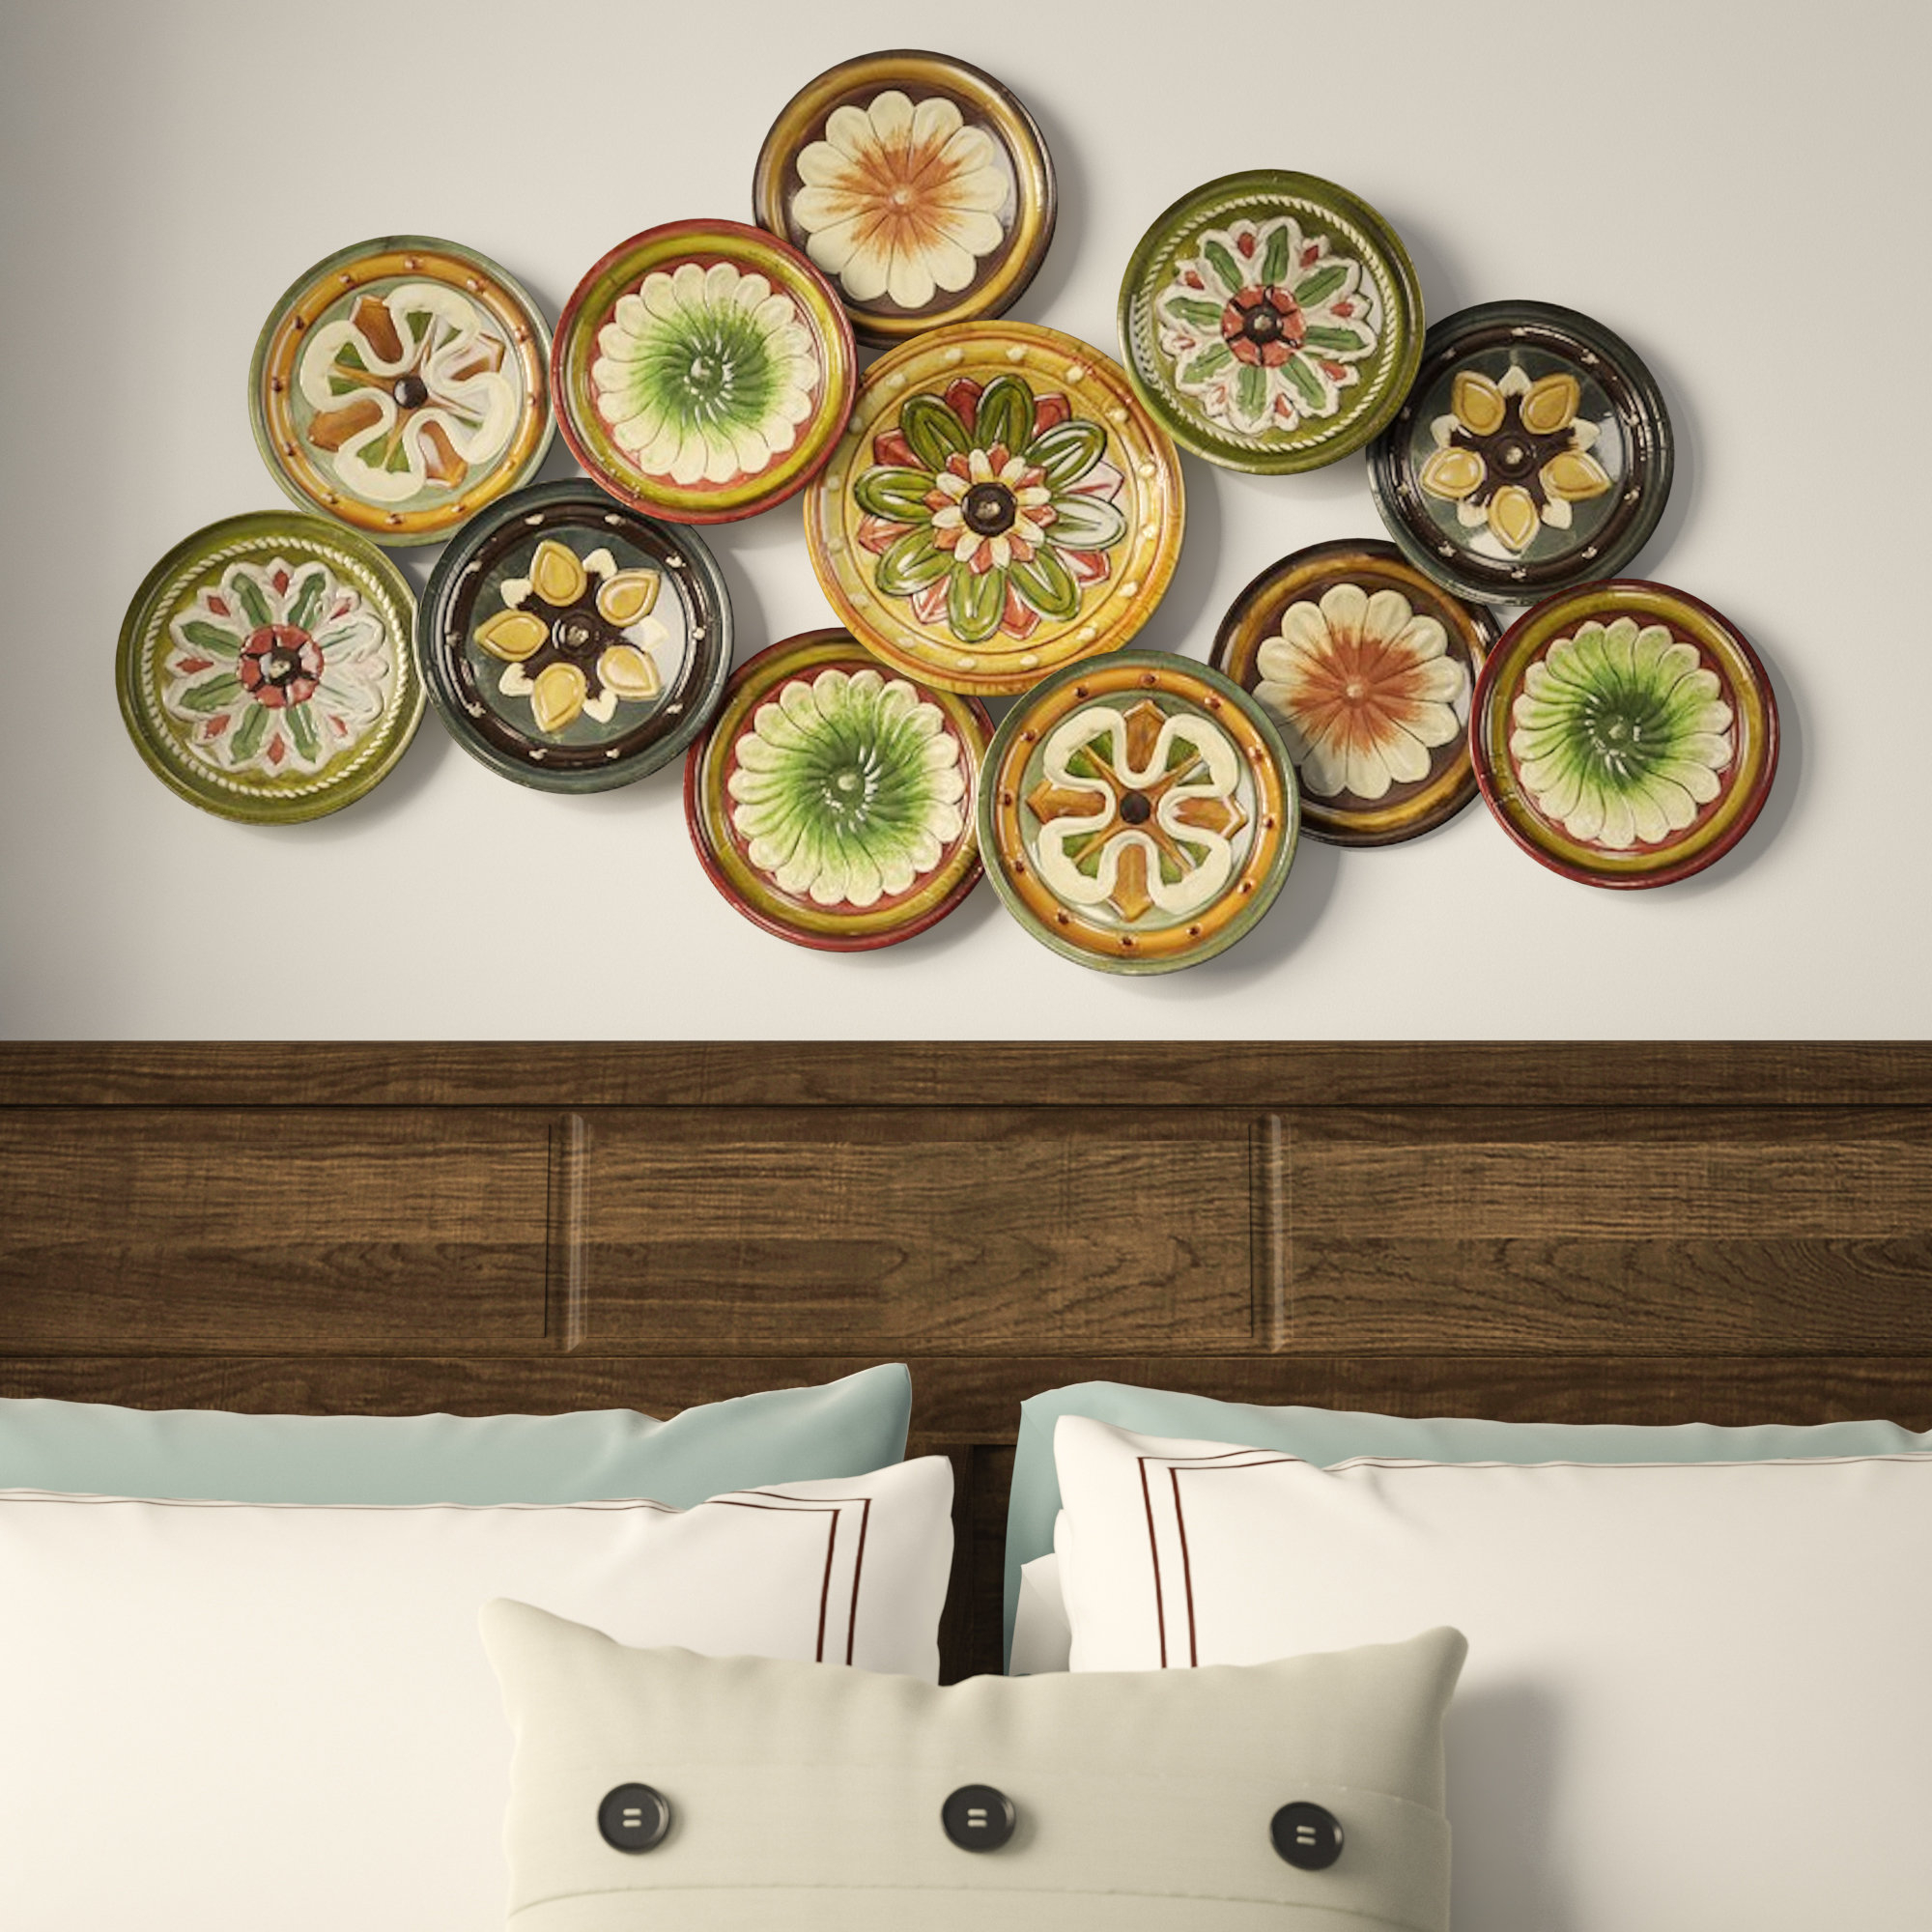 Charlton Home Metal Wall Décor Regarding Scattered Metal Italian Plates Wall Decor (View 4 of 30)